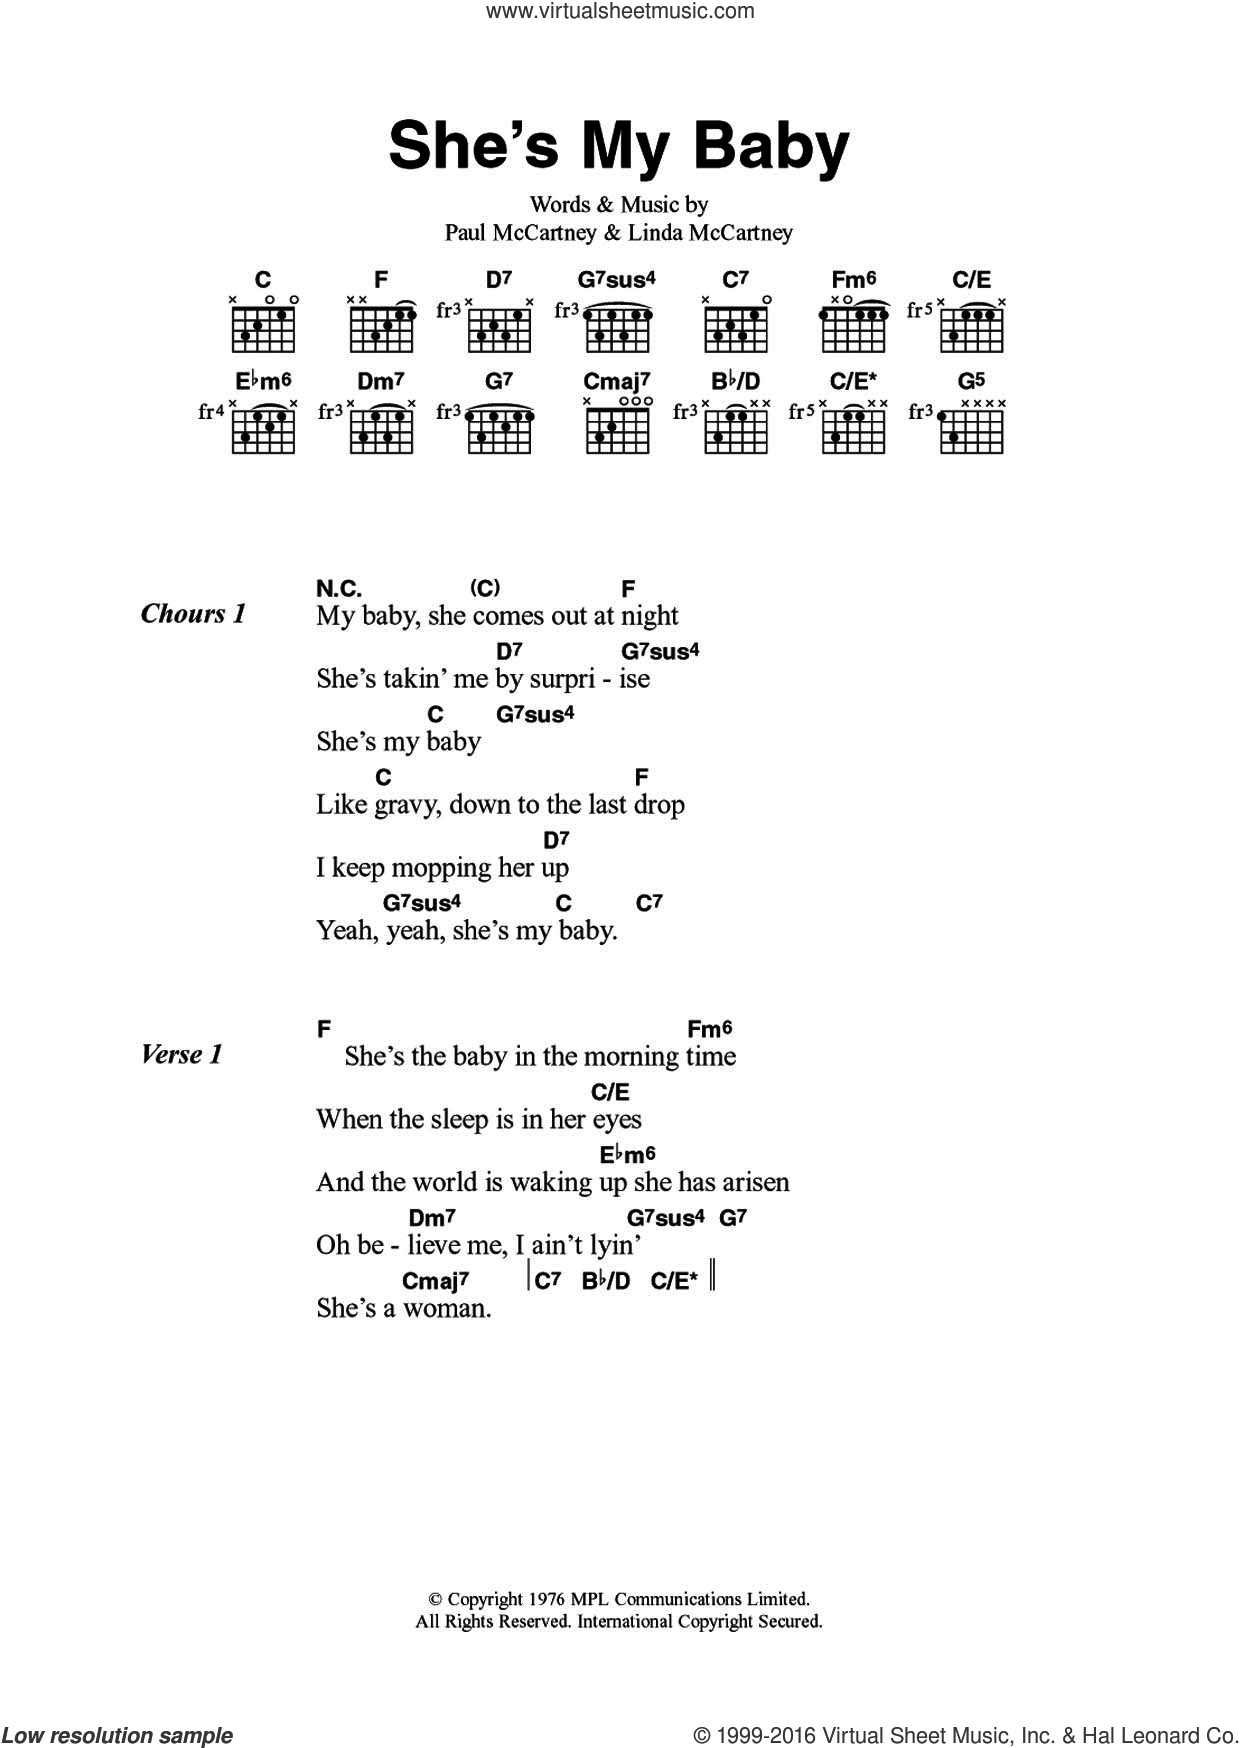 Wings Shes My Baby Sheet Music For Guitar Chords Pdf